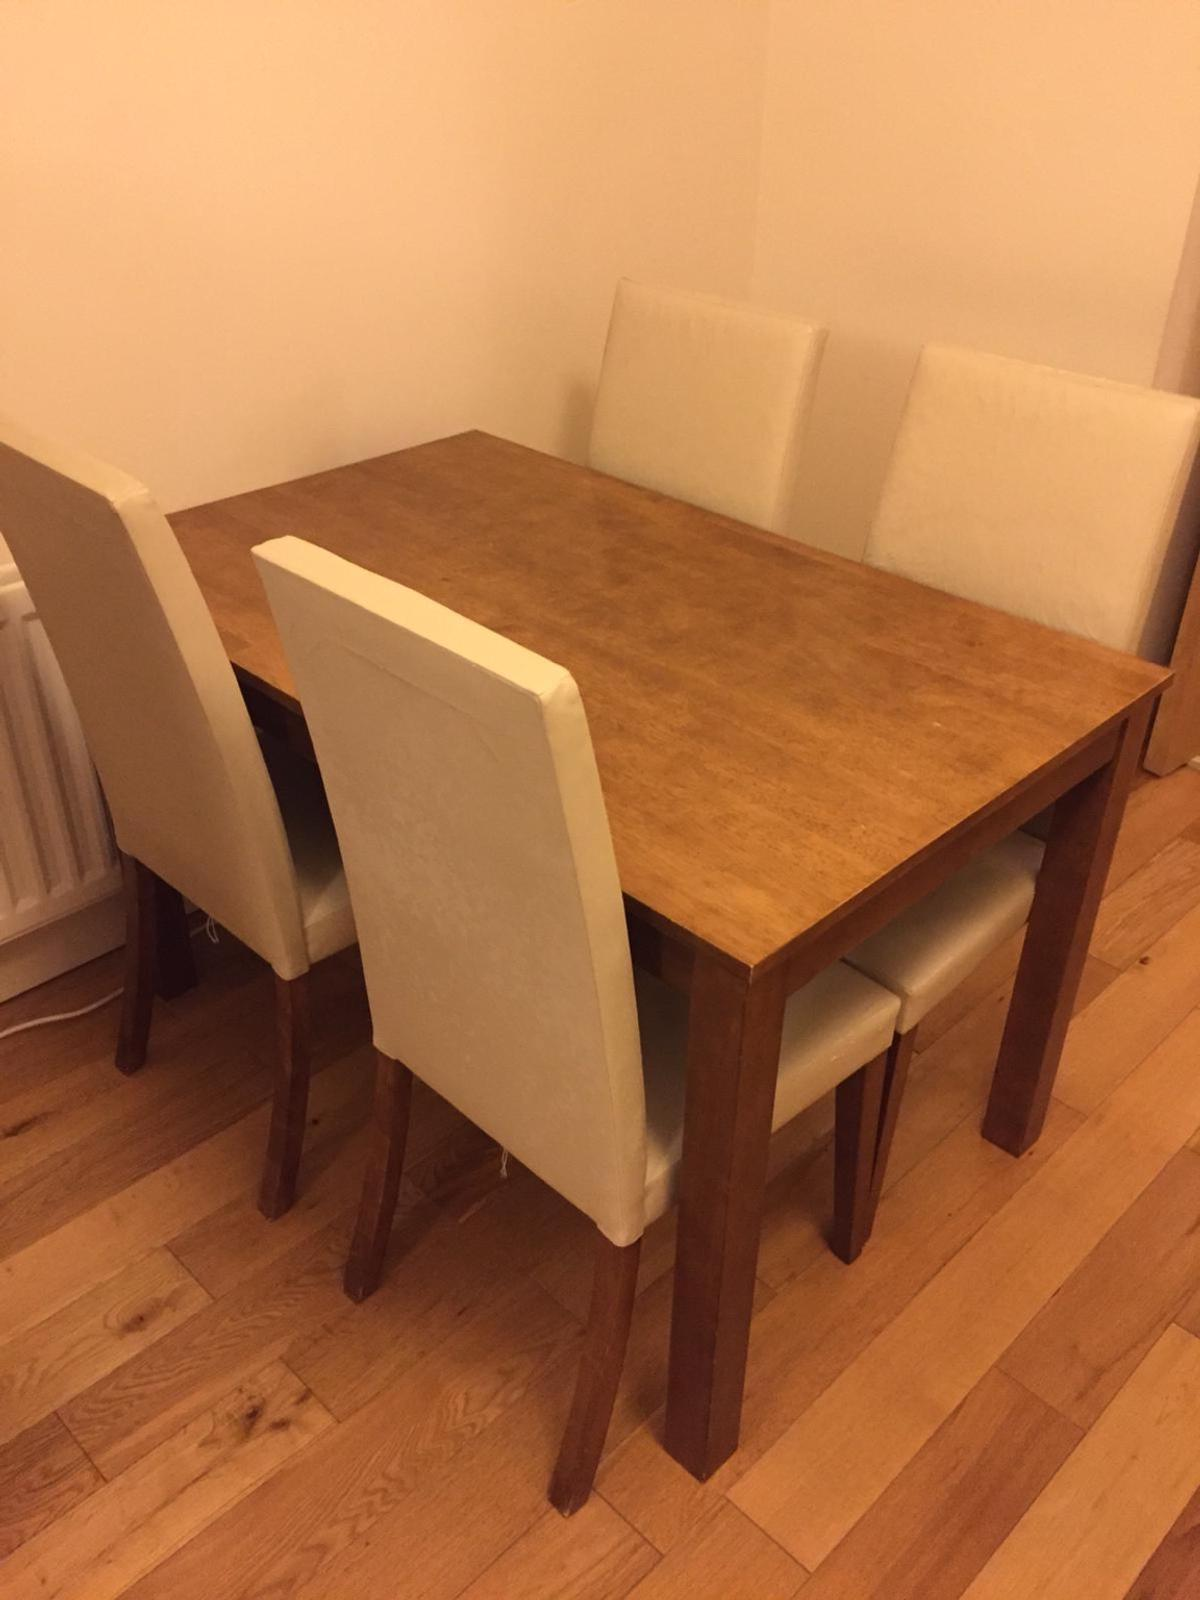 dining table set 4 chairs in en5 london for £5000 for